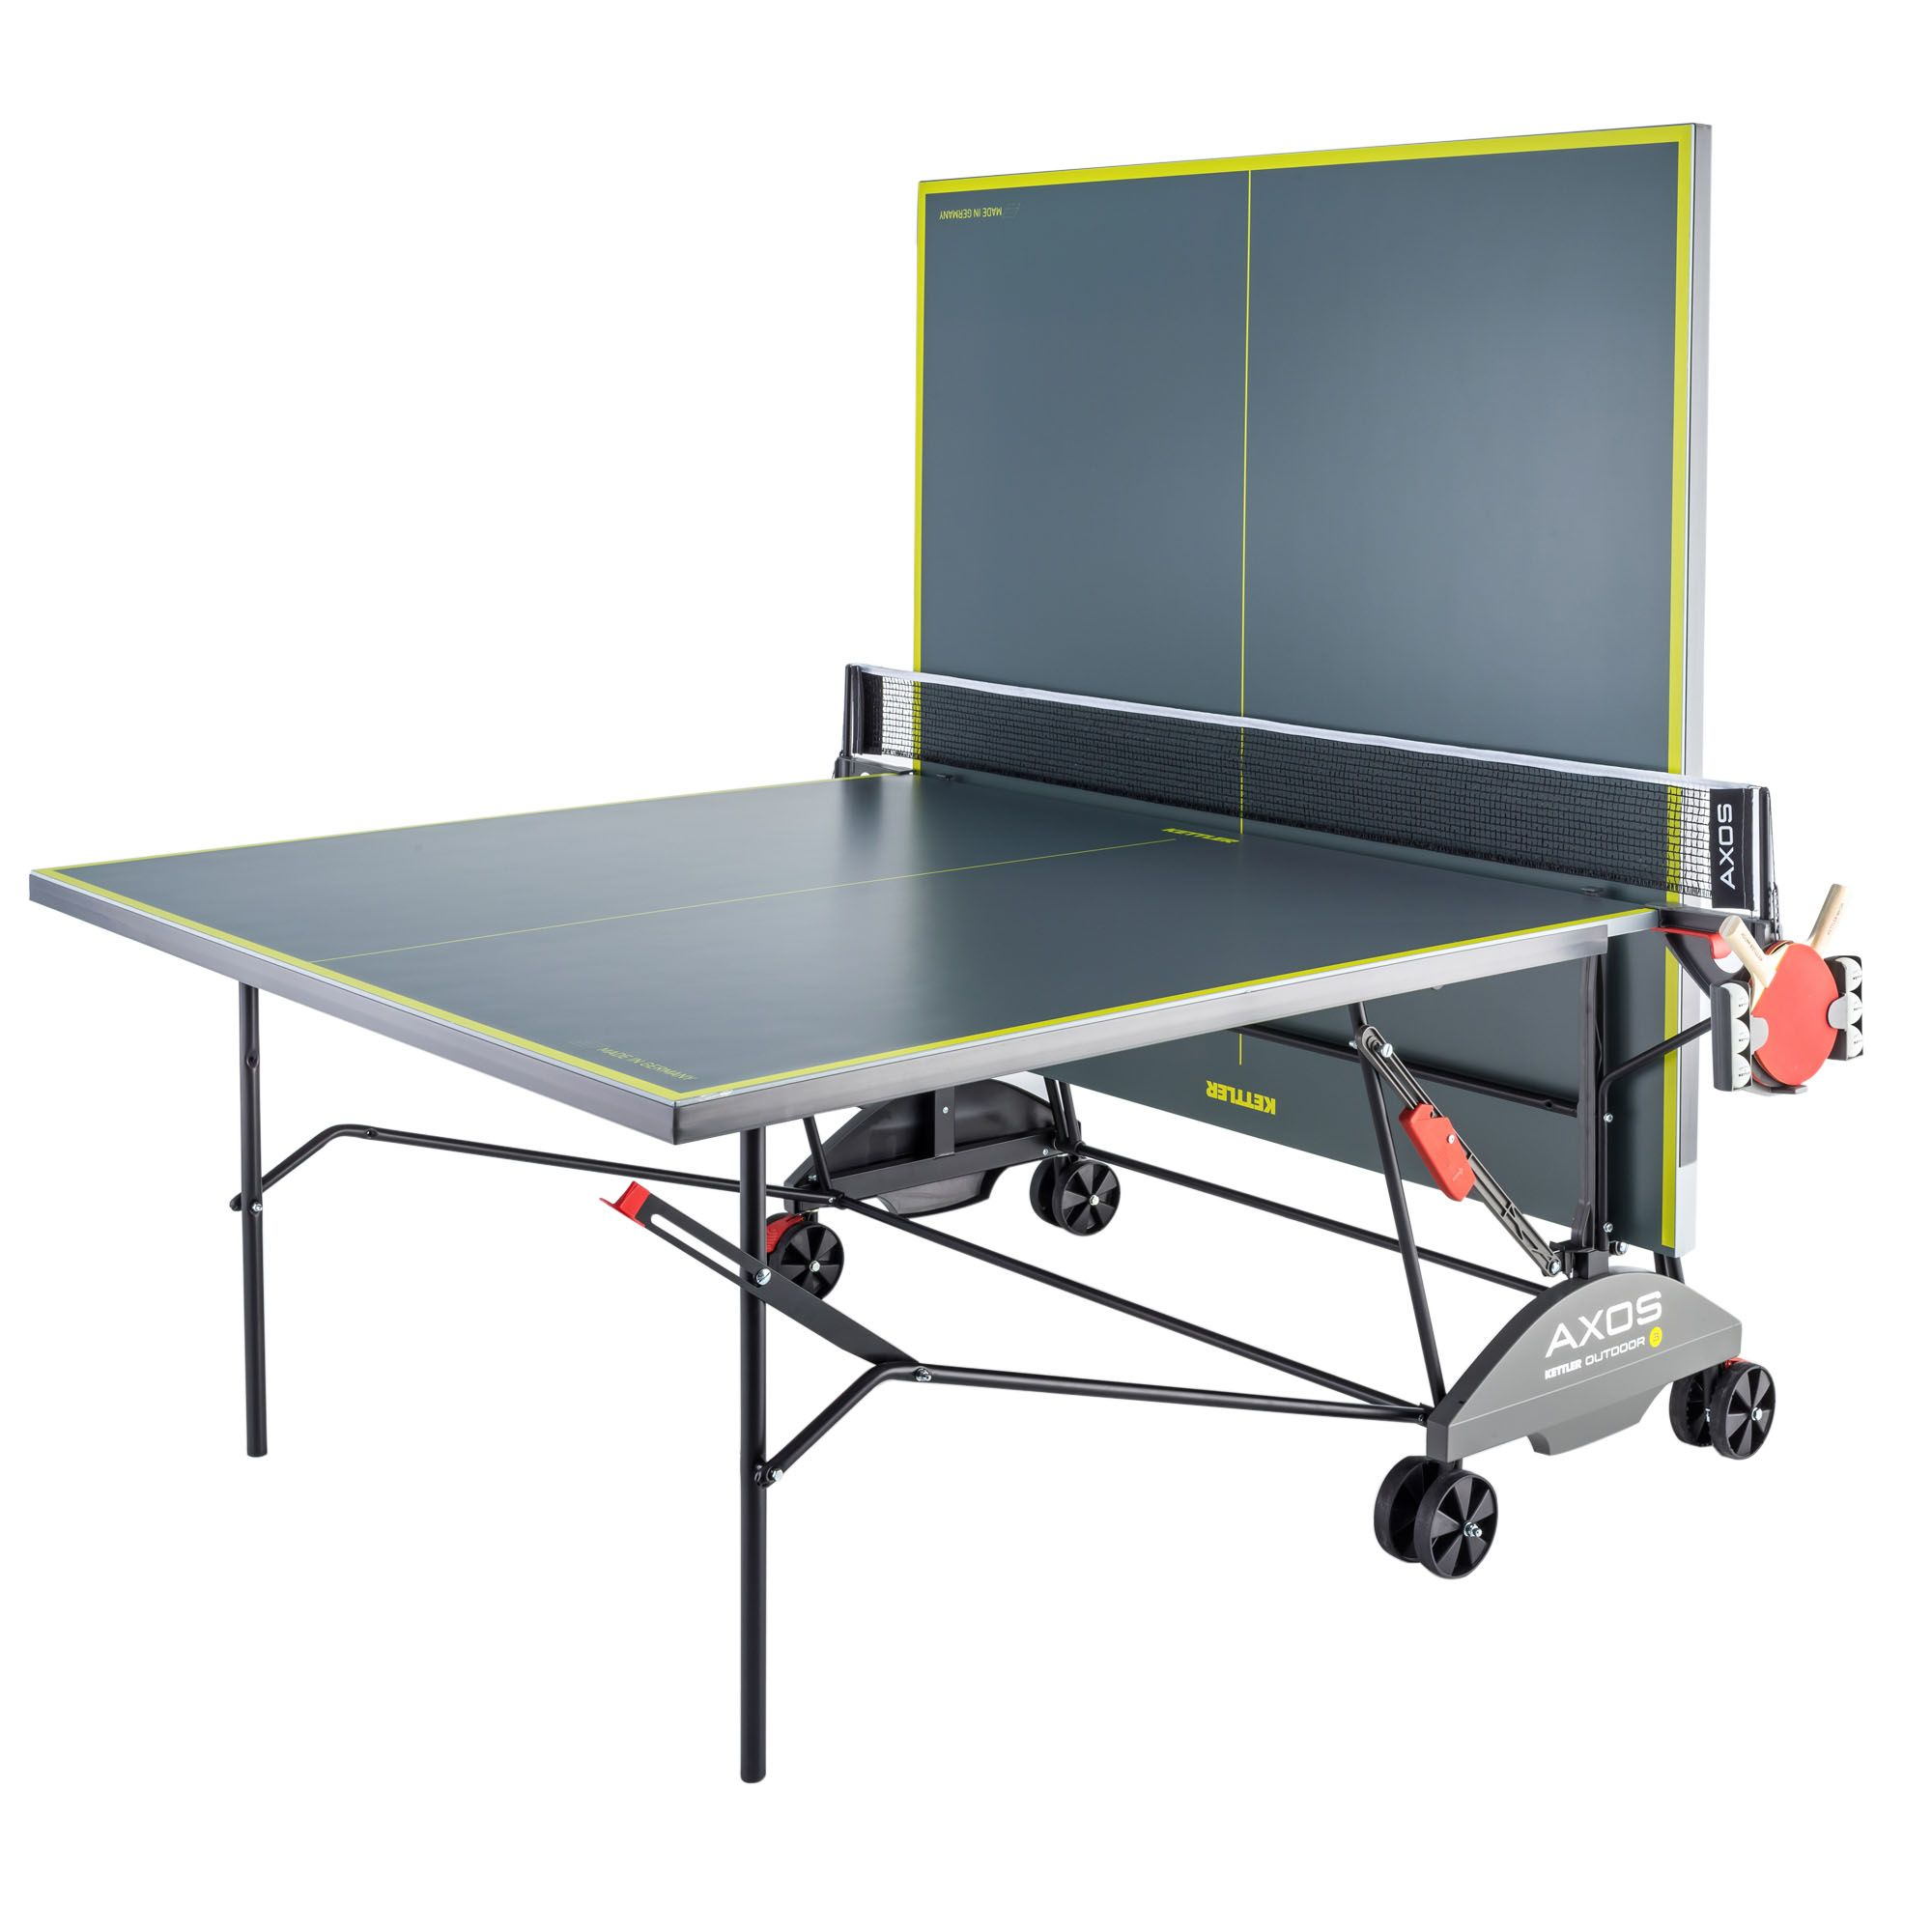 Kettler axos 3 outdoor table tennis table - Weatherproof table tennis table ...